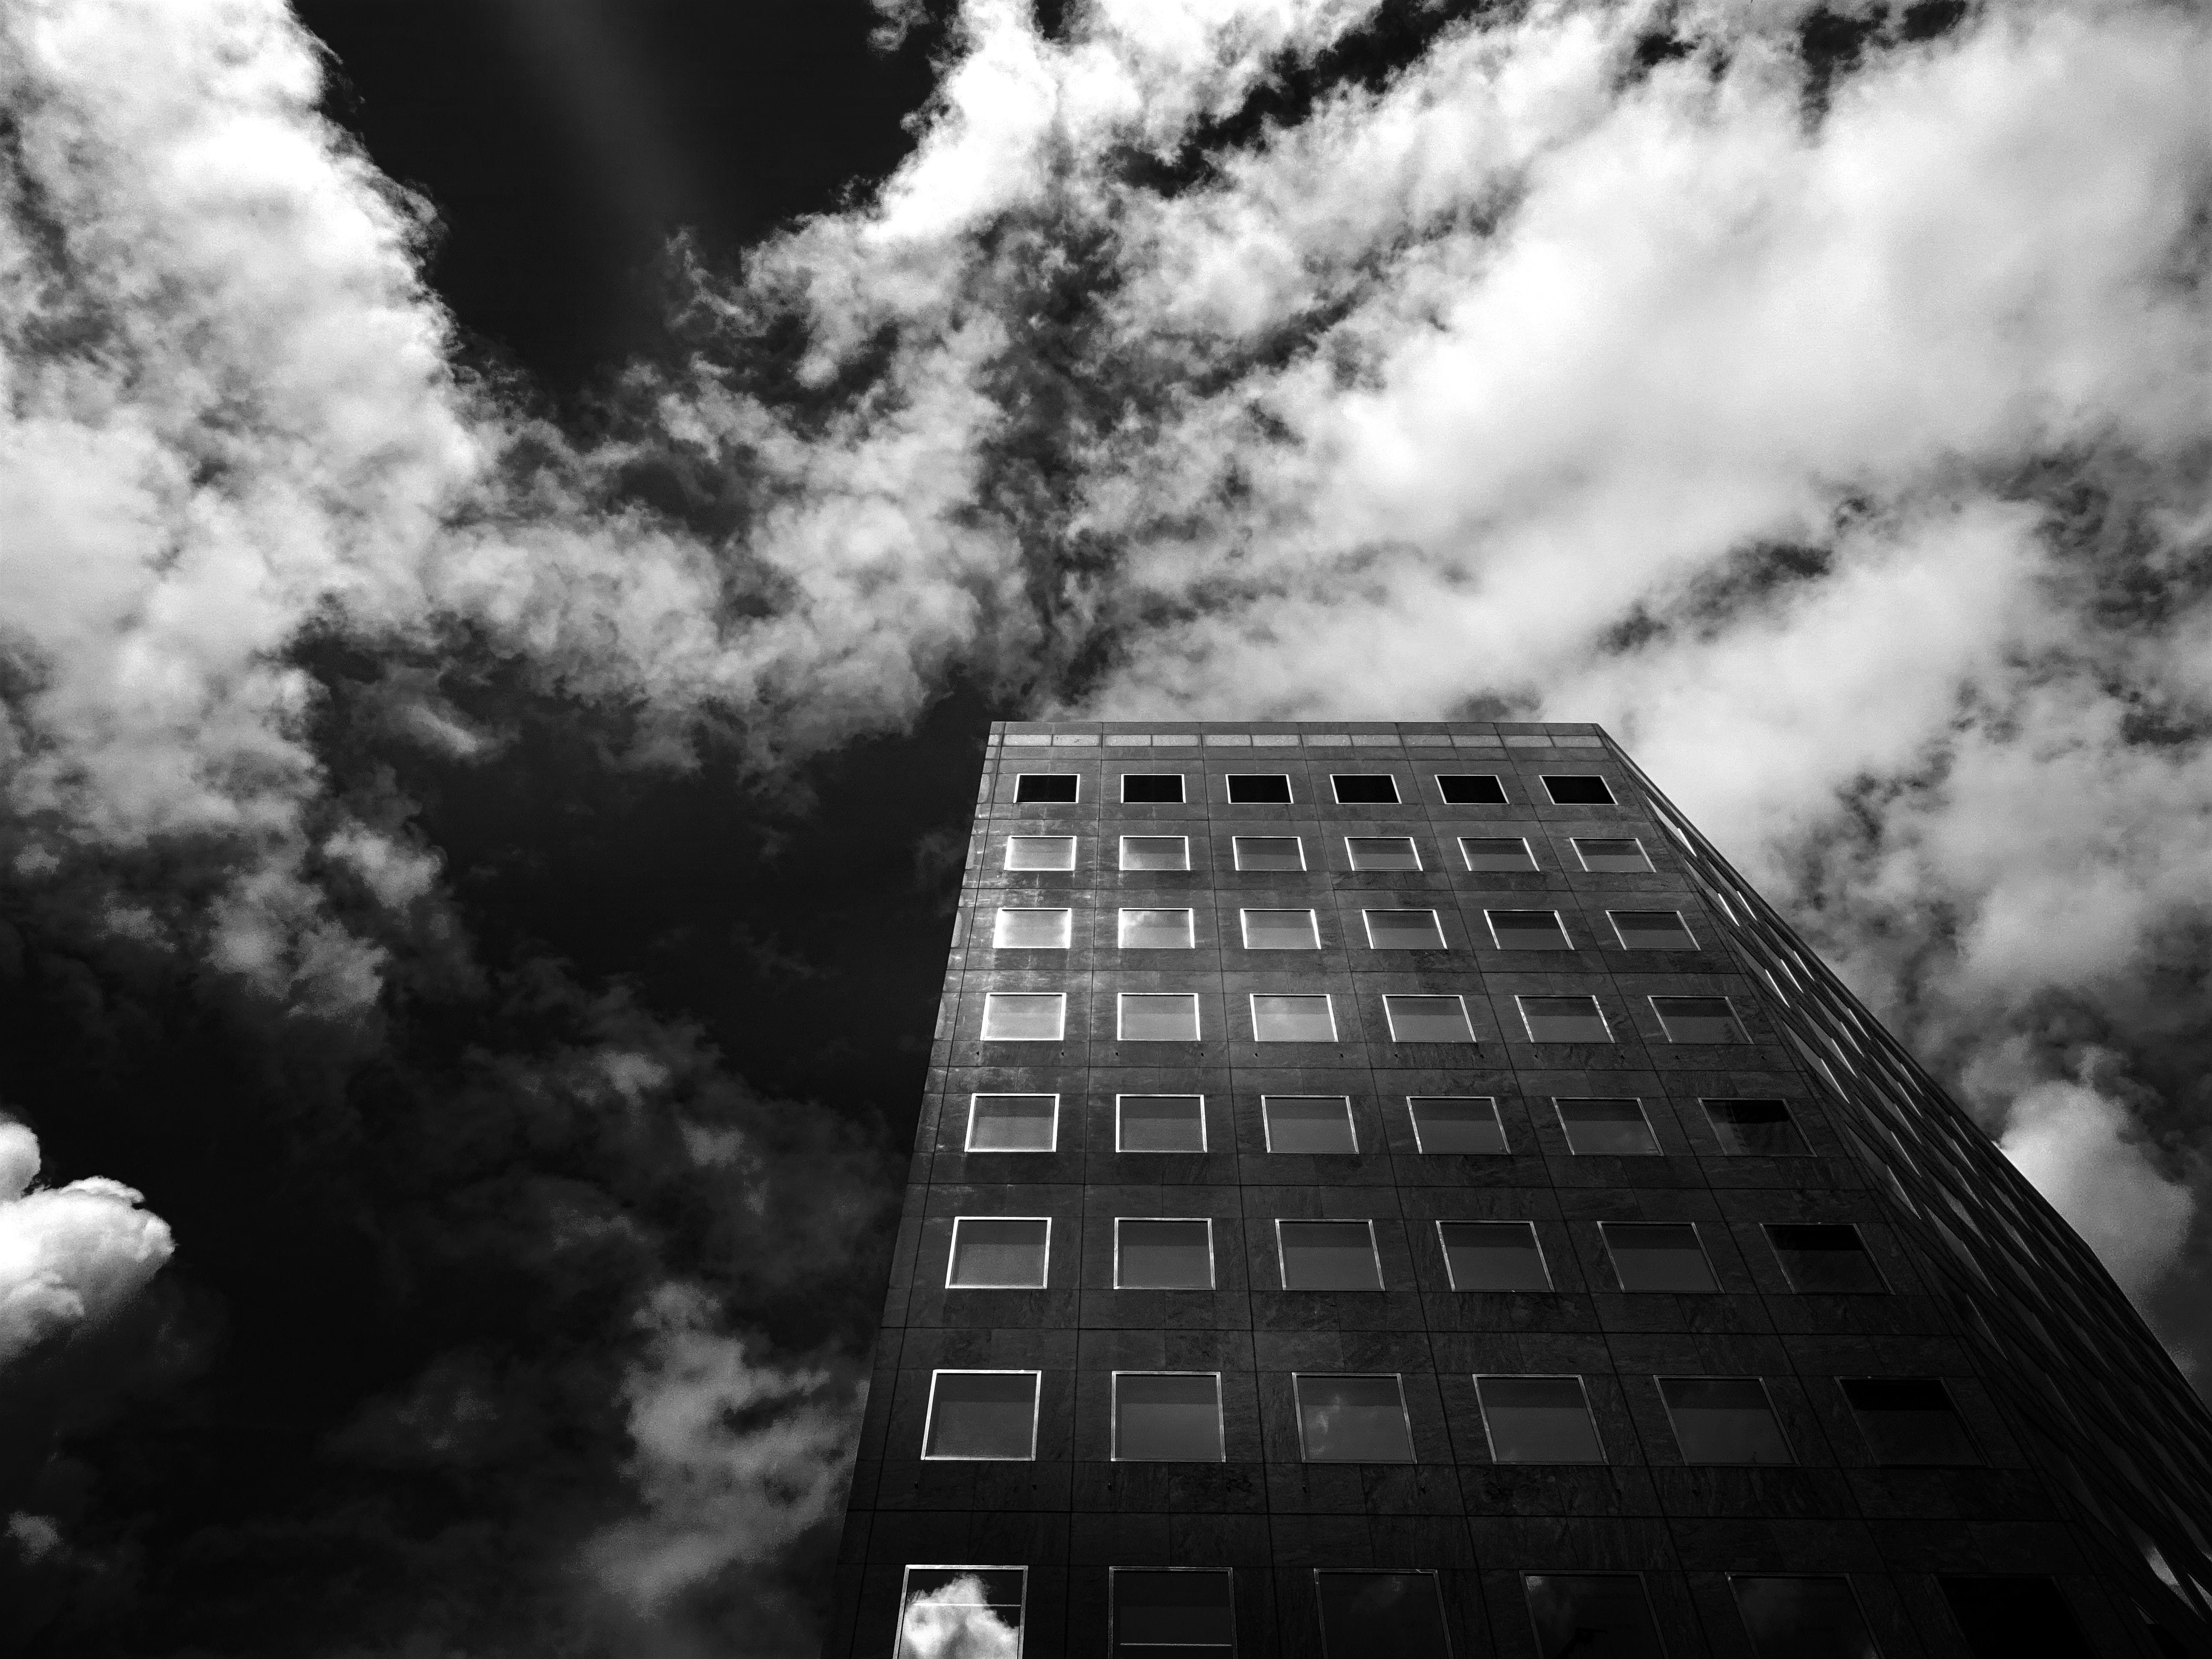 Low-angle Photography of Concrete High-rise Building Under Cloudy Skies